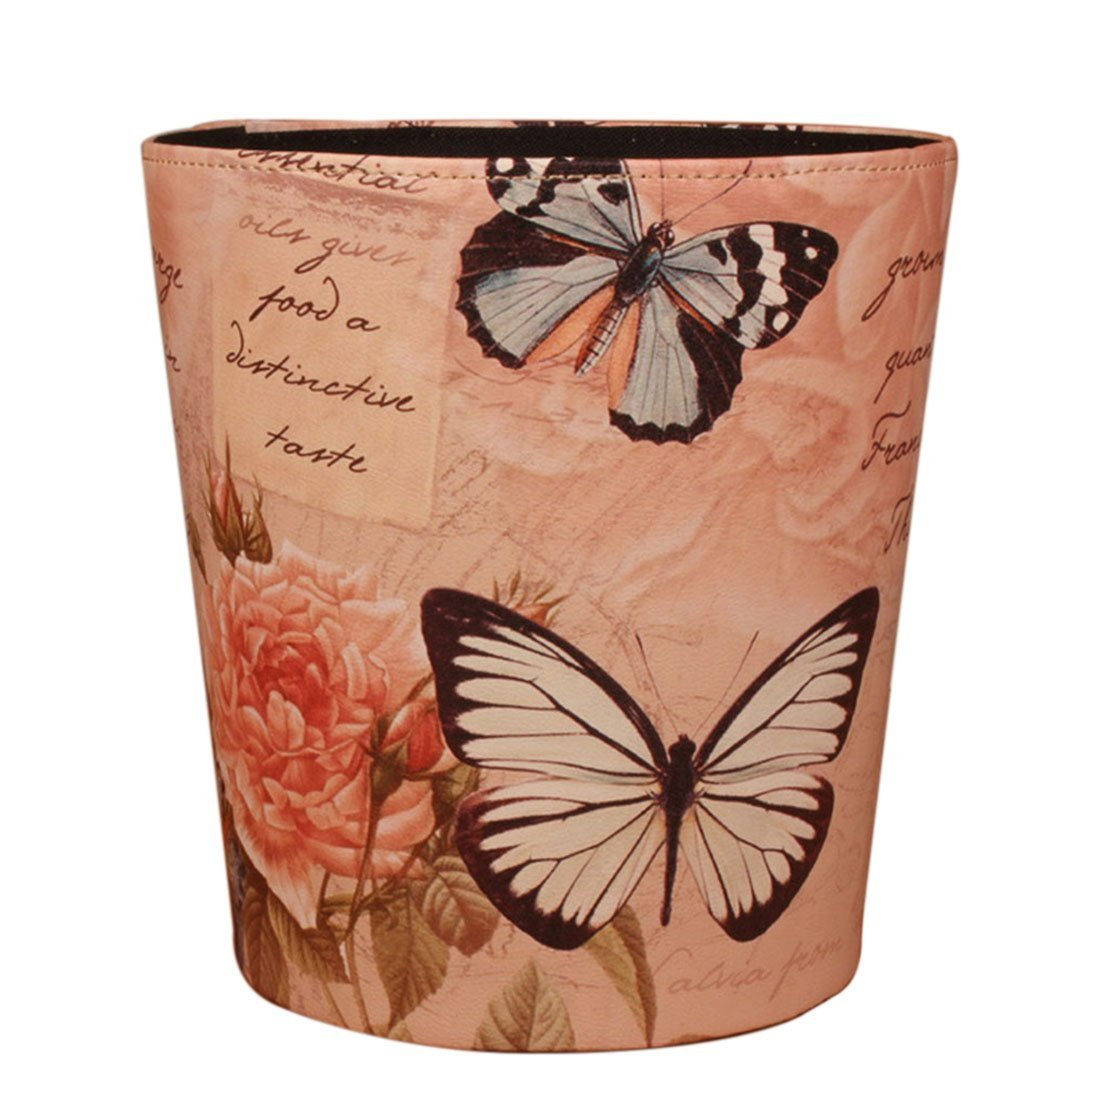 Butterfly Trash Can Samyoung Home Decor European Style PU Leather Wastebasket Creative Recycle Bins Paper Basket Uncovered Green Trash Pack For Kitchen Household Storage Office Supplies